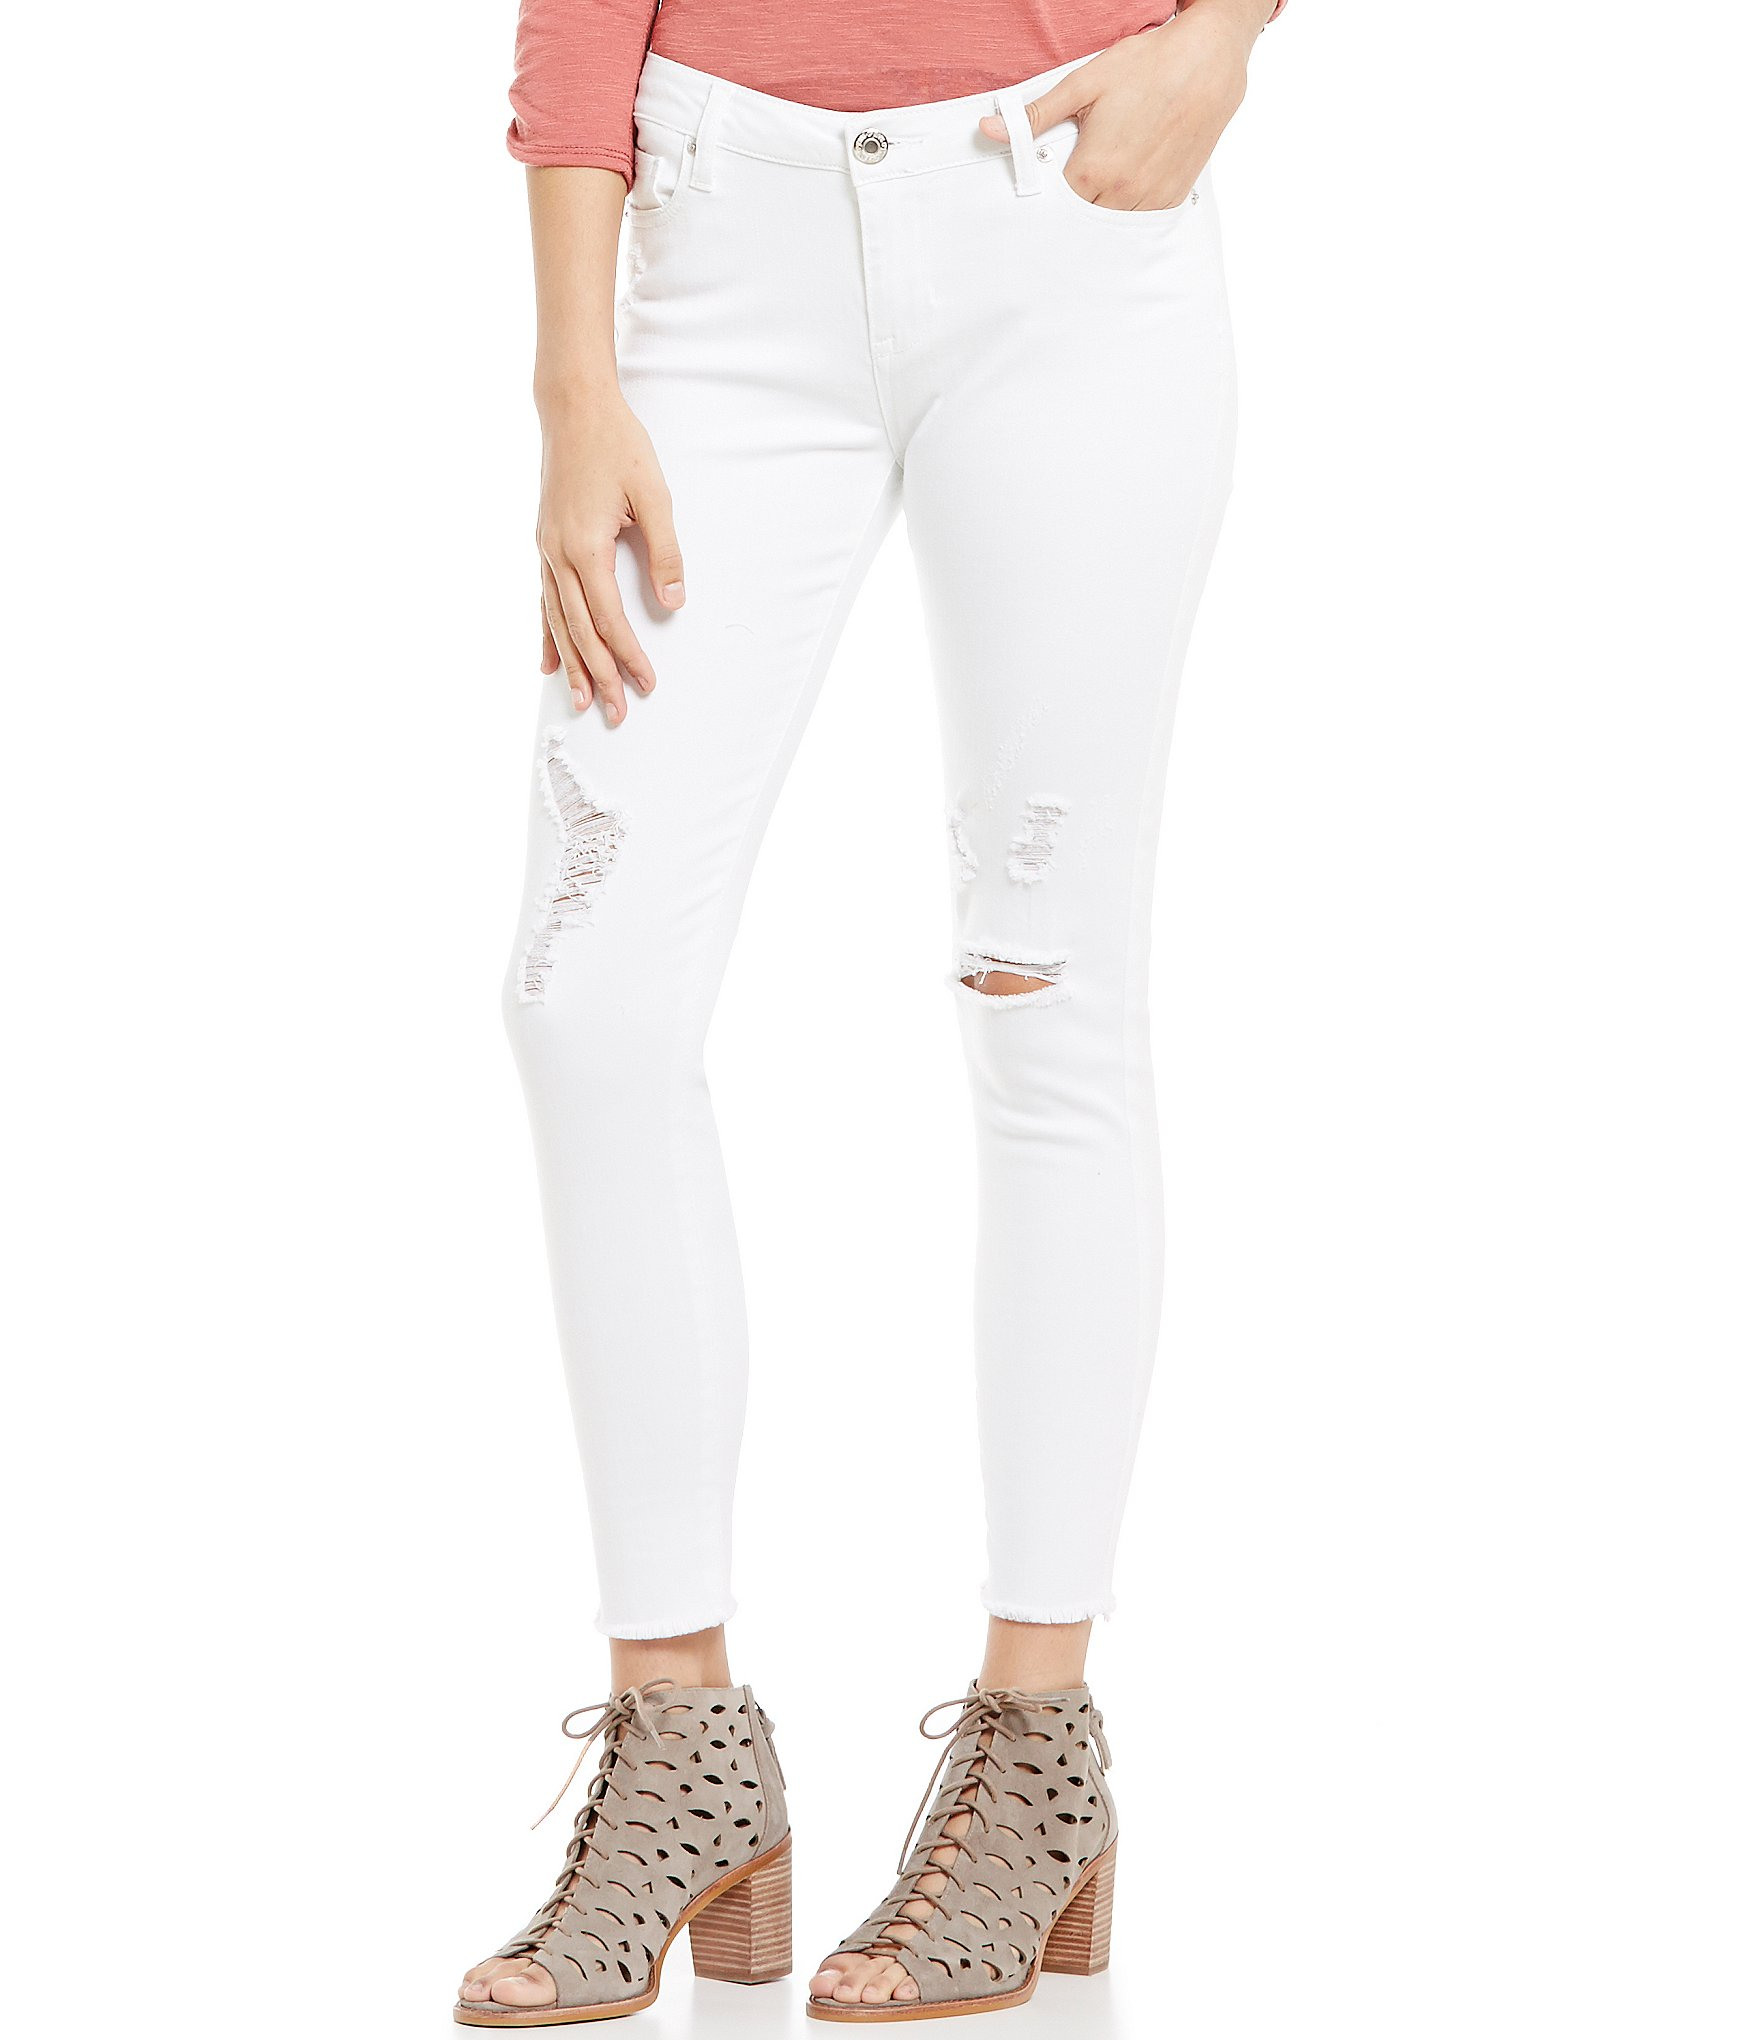 Amazon.com: celebrity pink jeans: Clothing, Shoes & Jewelry